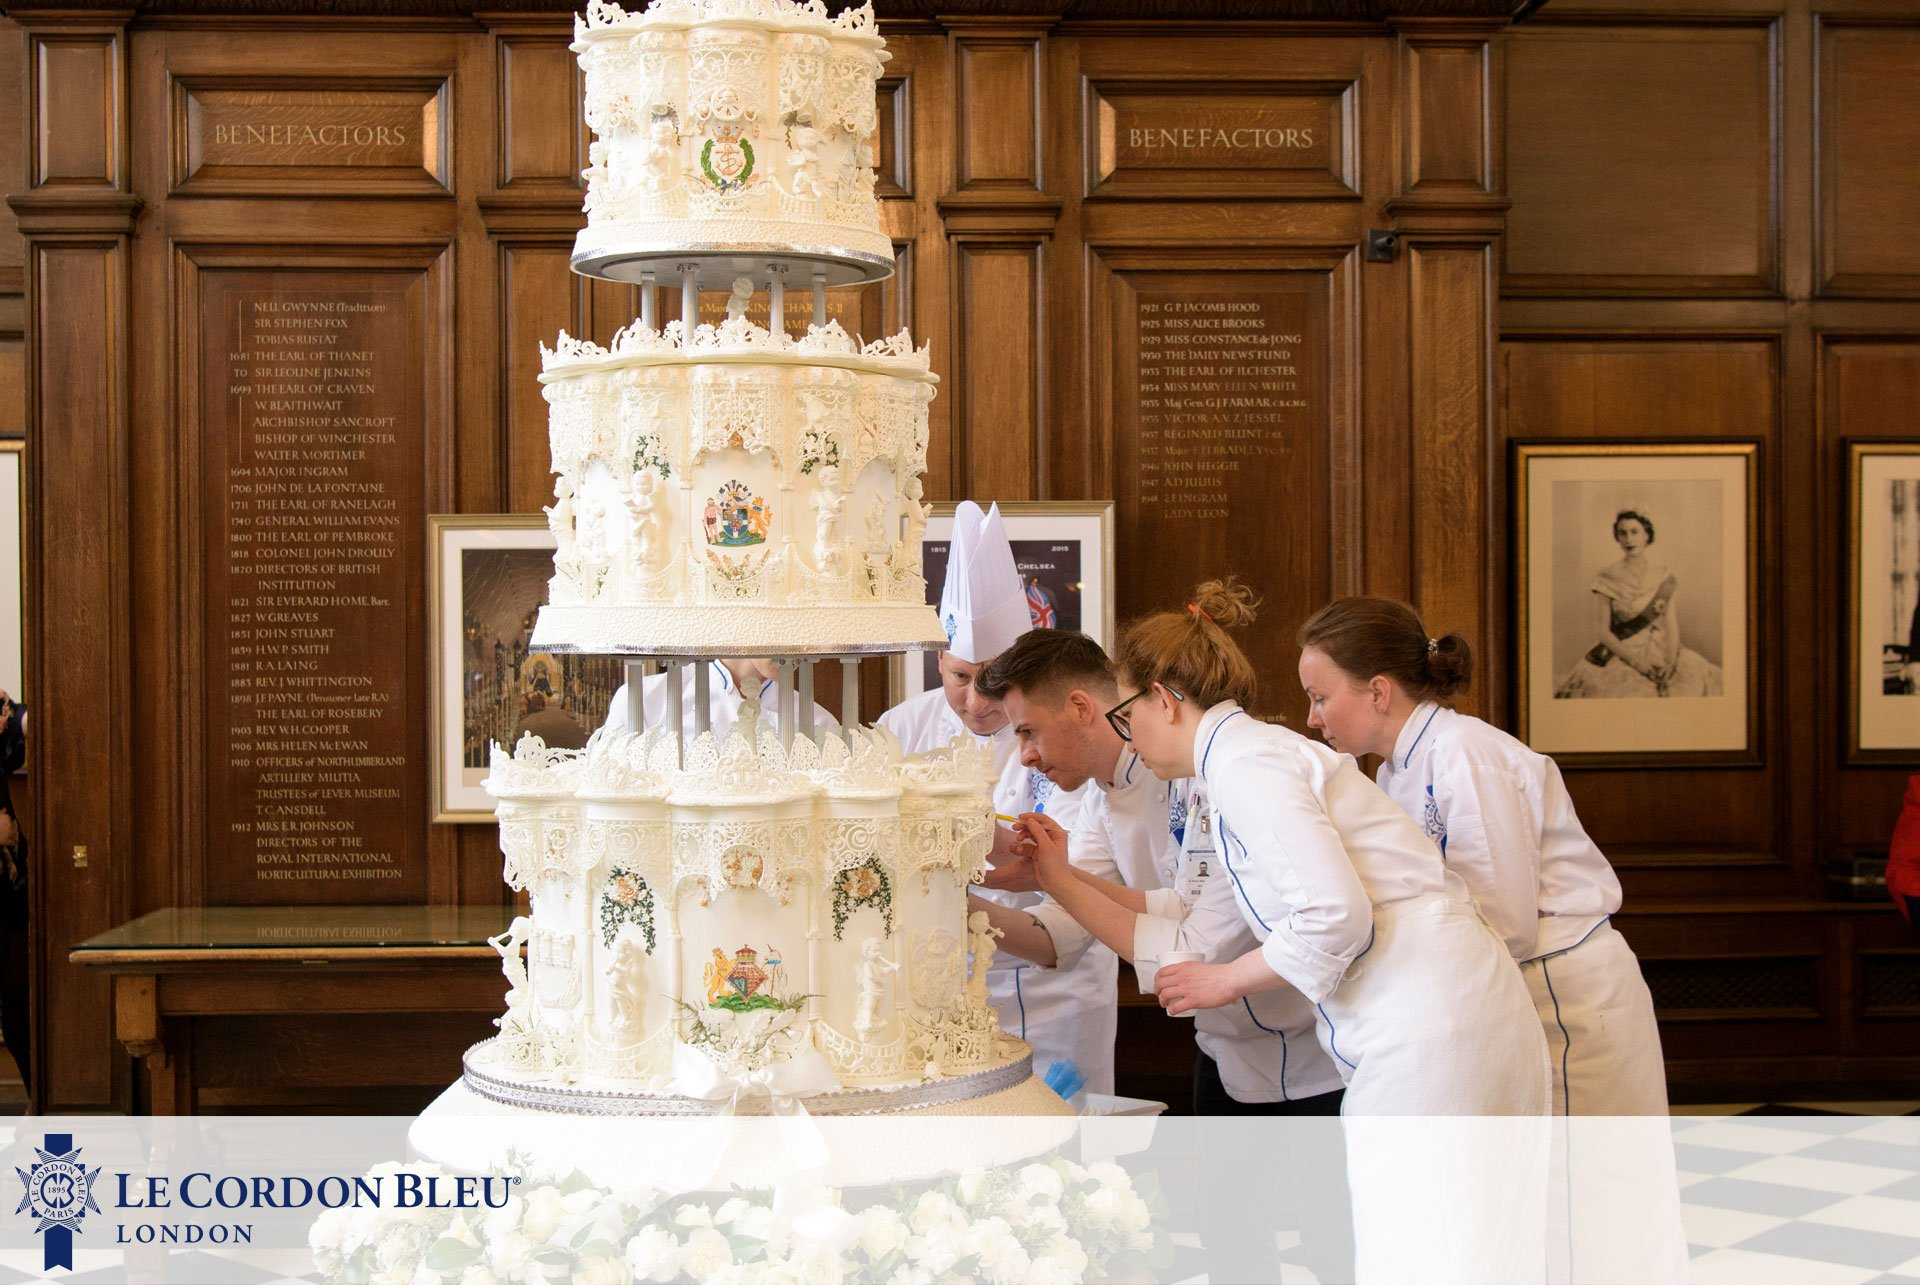 Le Cordon Bleu London's cake fit for a queen